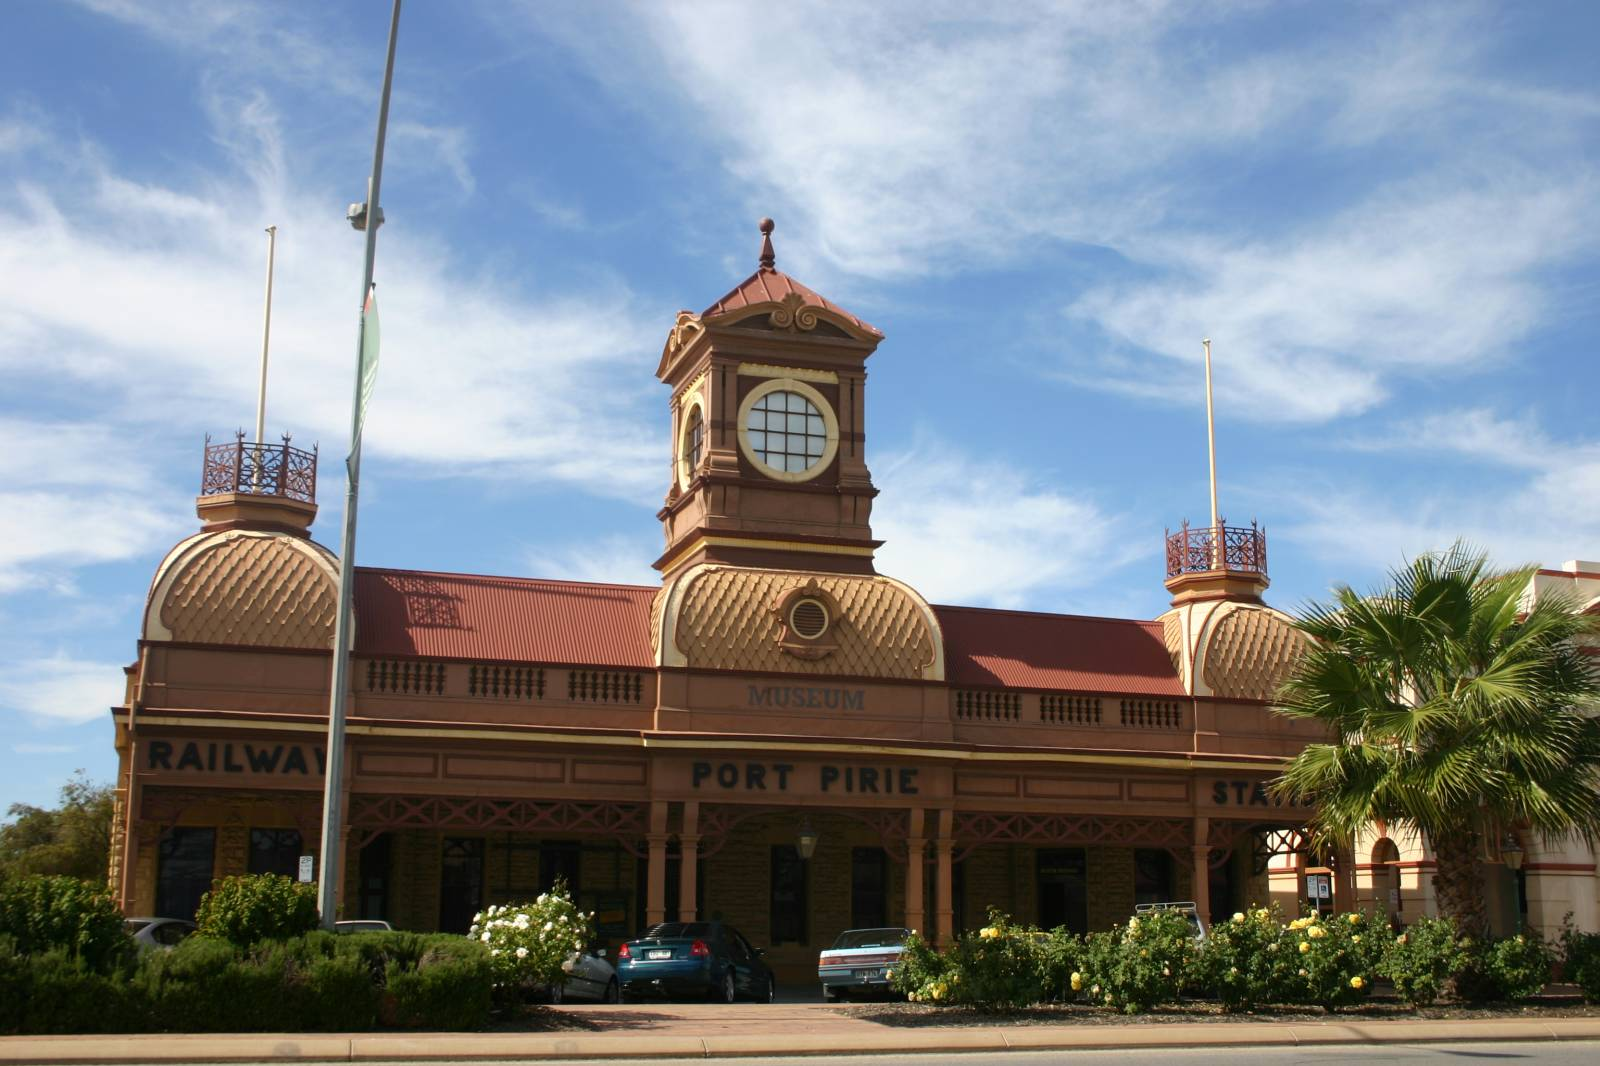 Port Pirie Australia  city photos gallery : Port Pirie Railway Station Wikipedia, the free encyclopedia